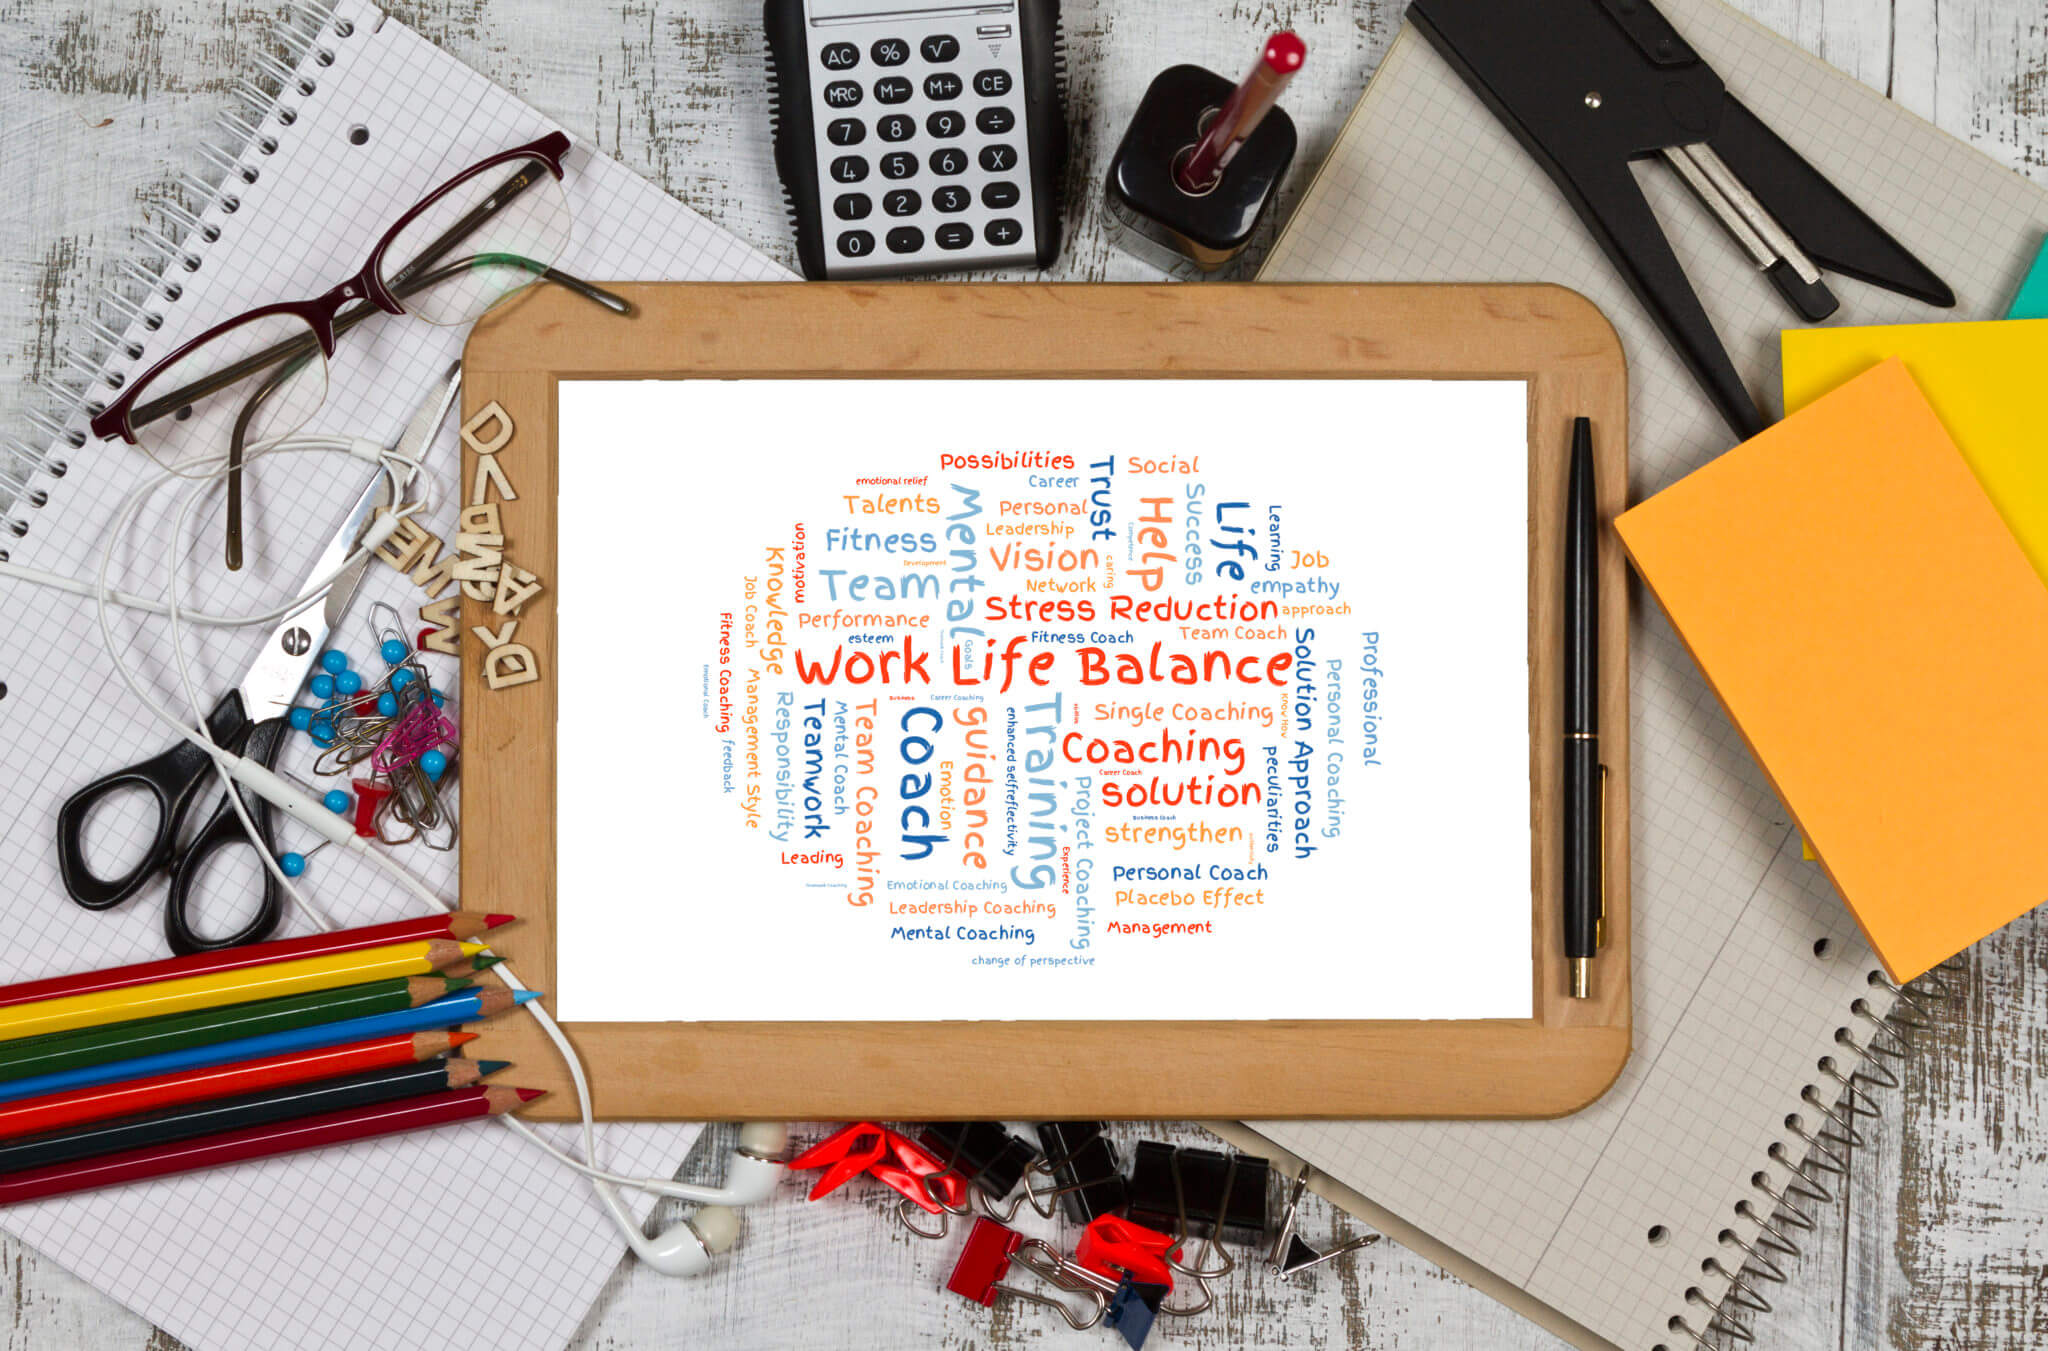 Work life Balance word cloud shaped as a circle concept